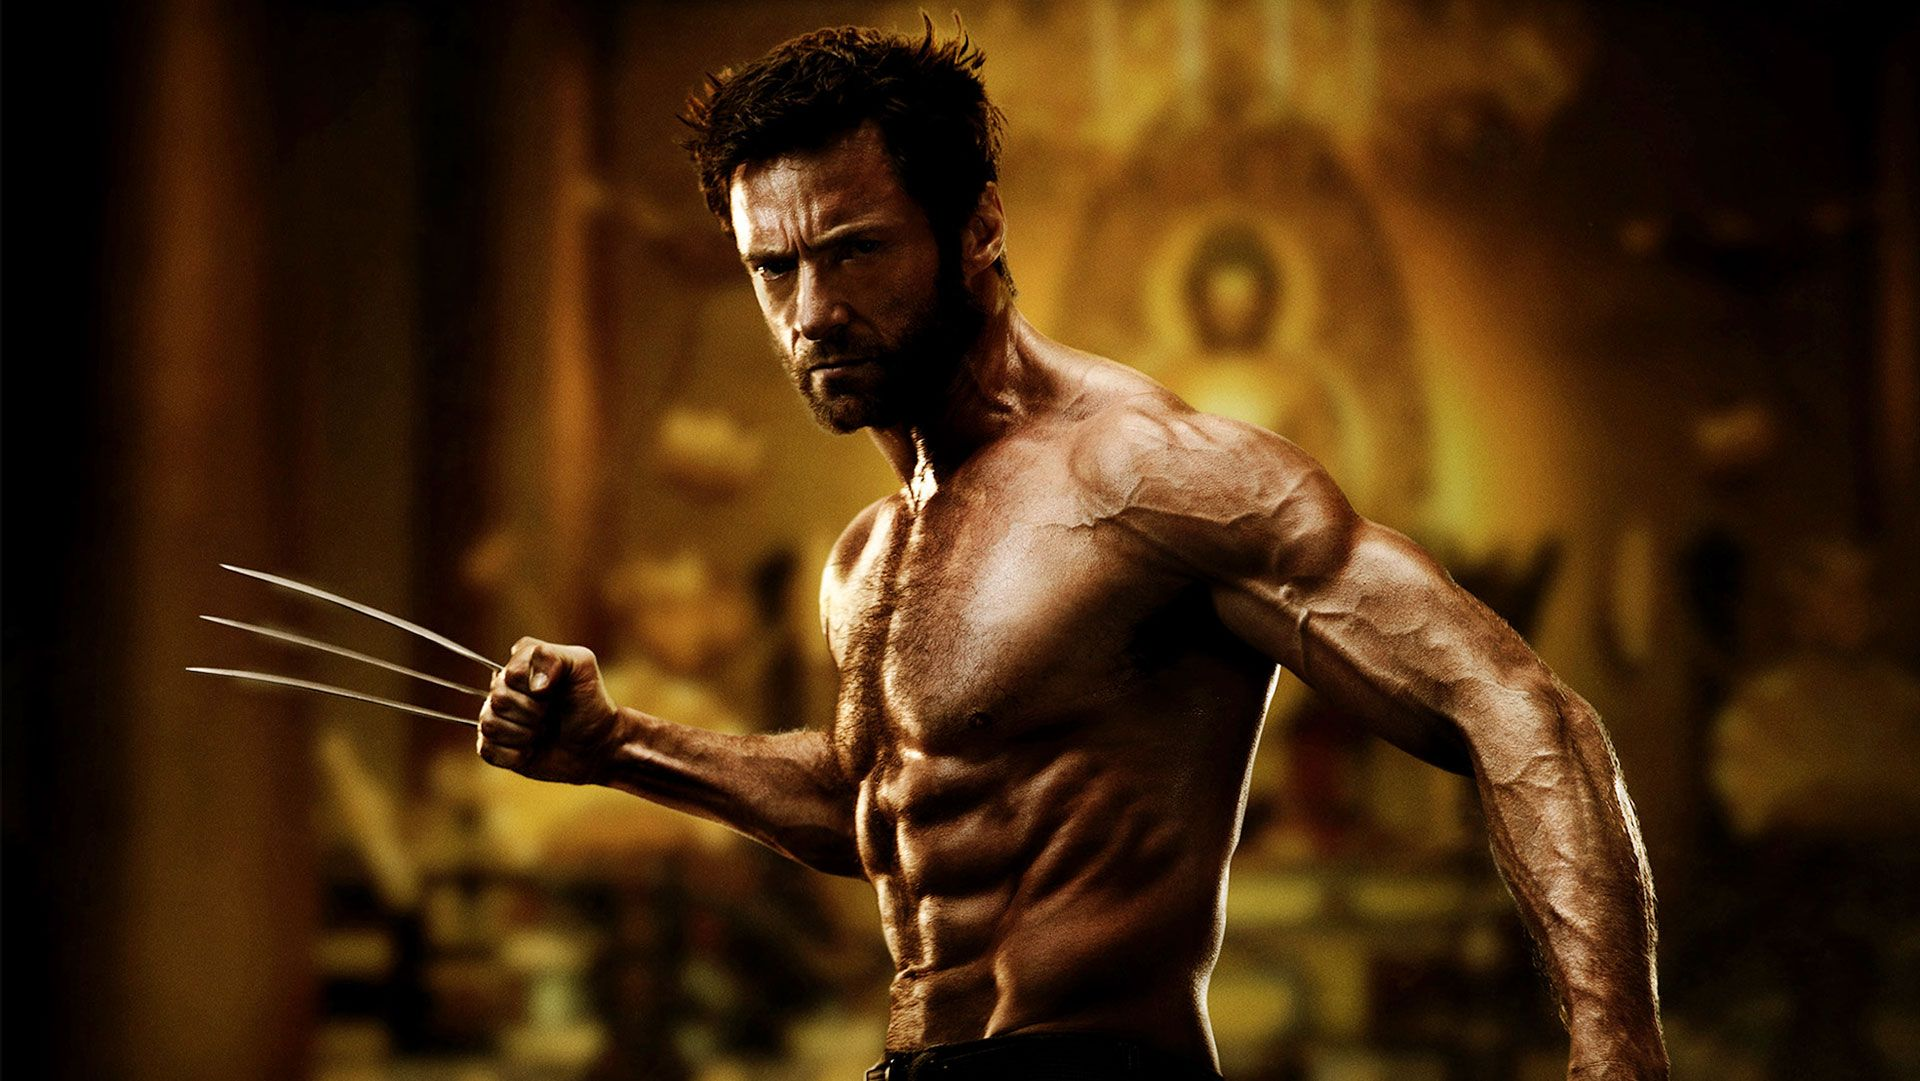 15 Insane Superhero Workouts To Try In The Gym